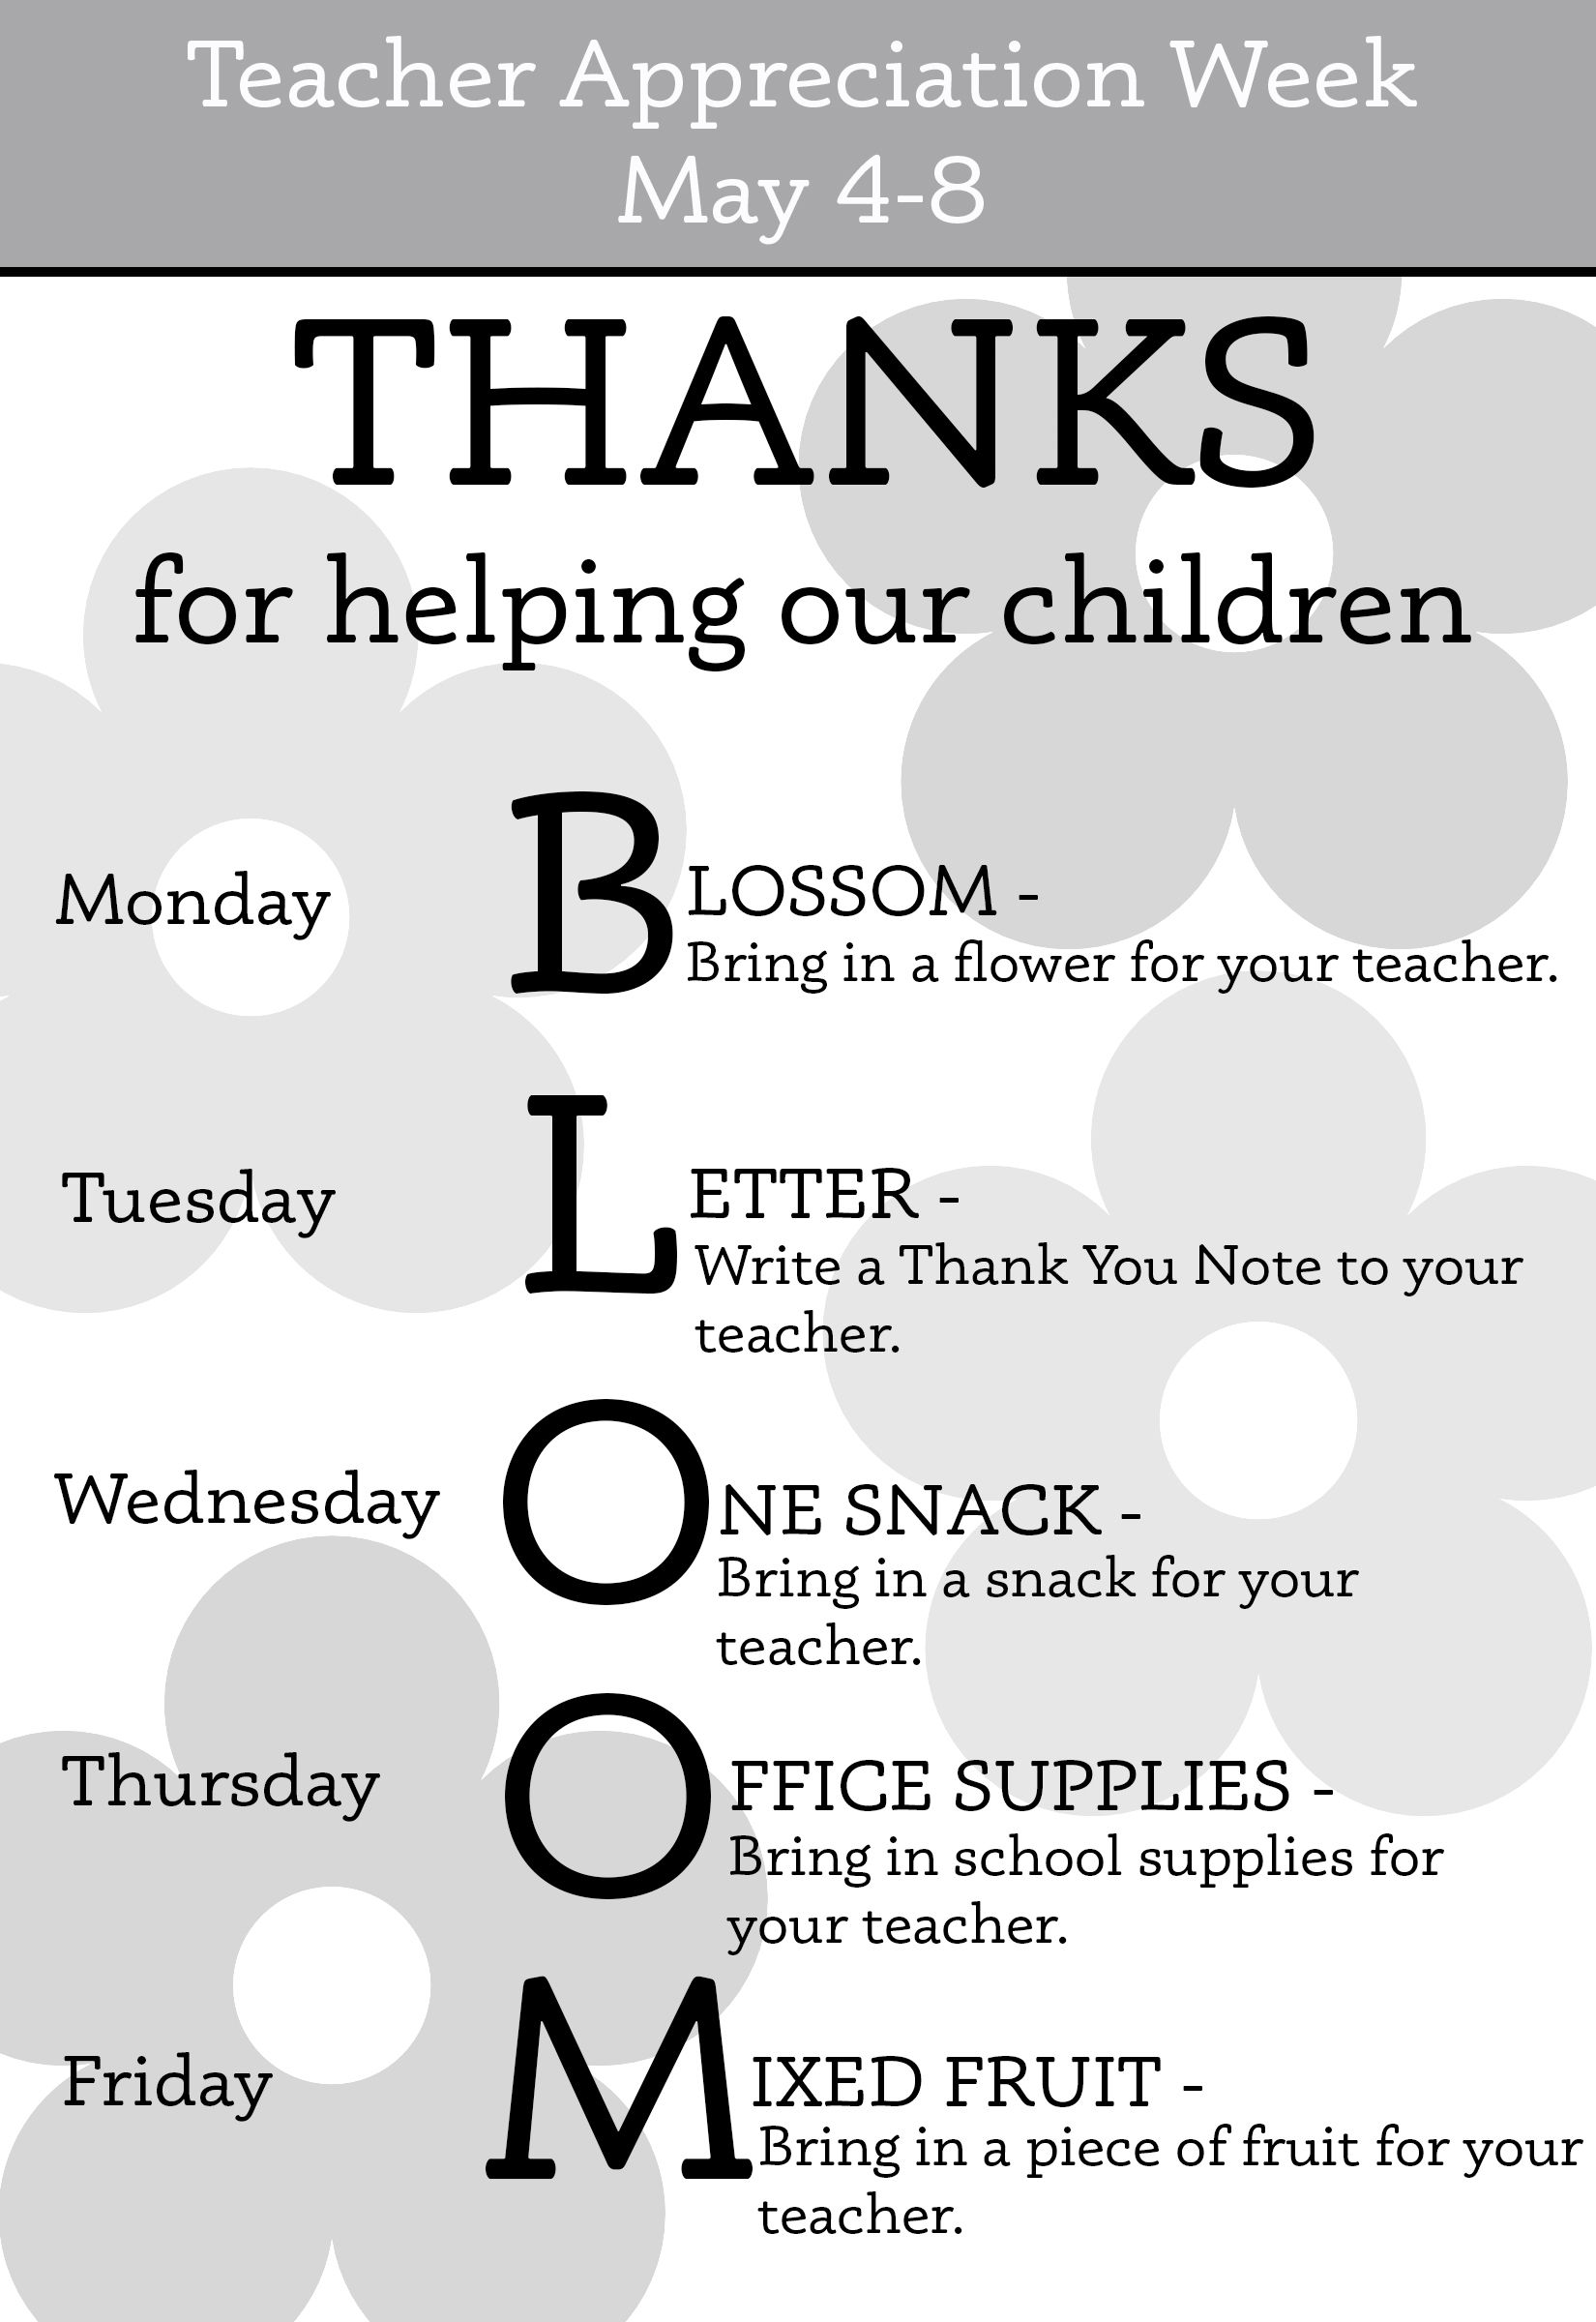 Teacher Appreciation Week Schedule  Yahoo Image Search Results